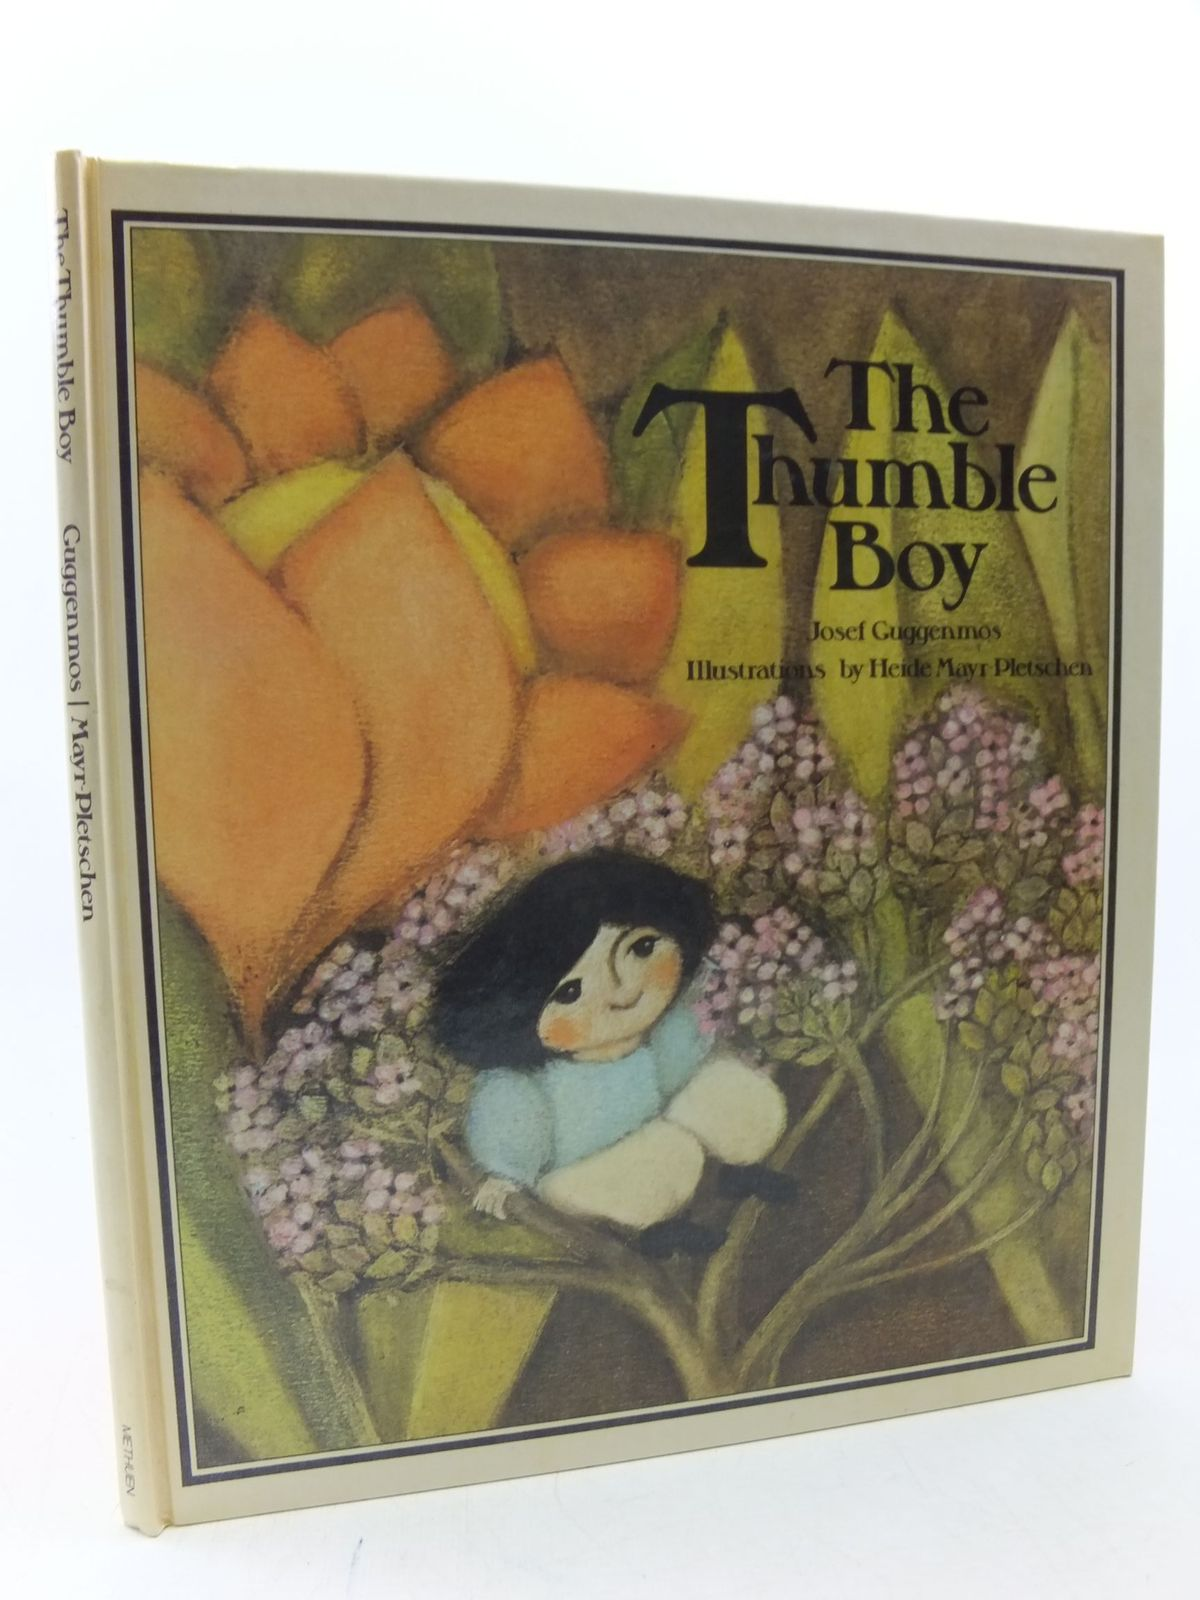 Photo of THE THUMBLE BOY written by Guggenmos, Josef Jones, Olive illustrated by Mayr-Pletschen, Heide published by Methuen Children's Books (STOCK CODE: 2112888)  for sale by Stella & Rose's Books